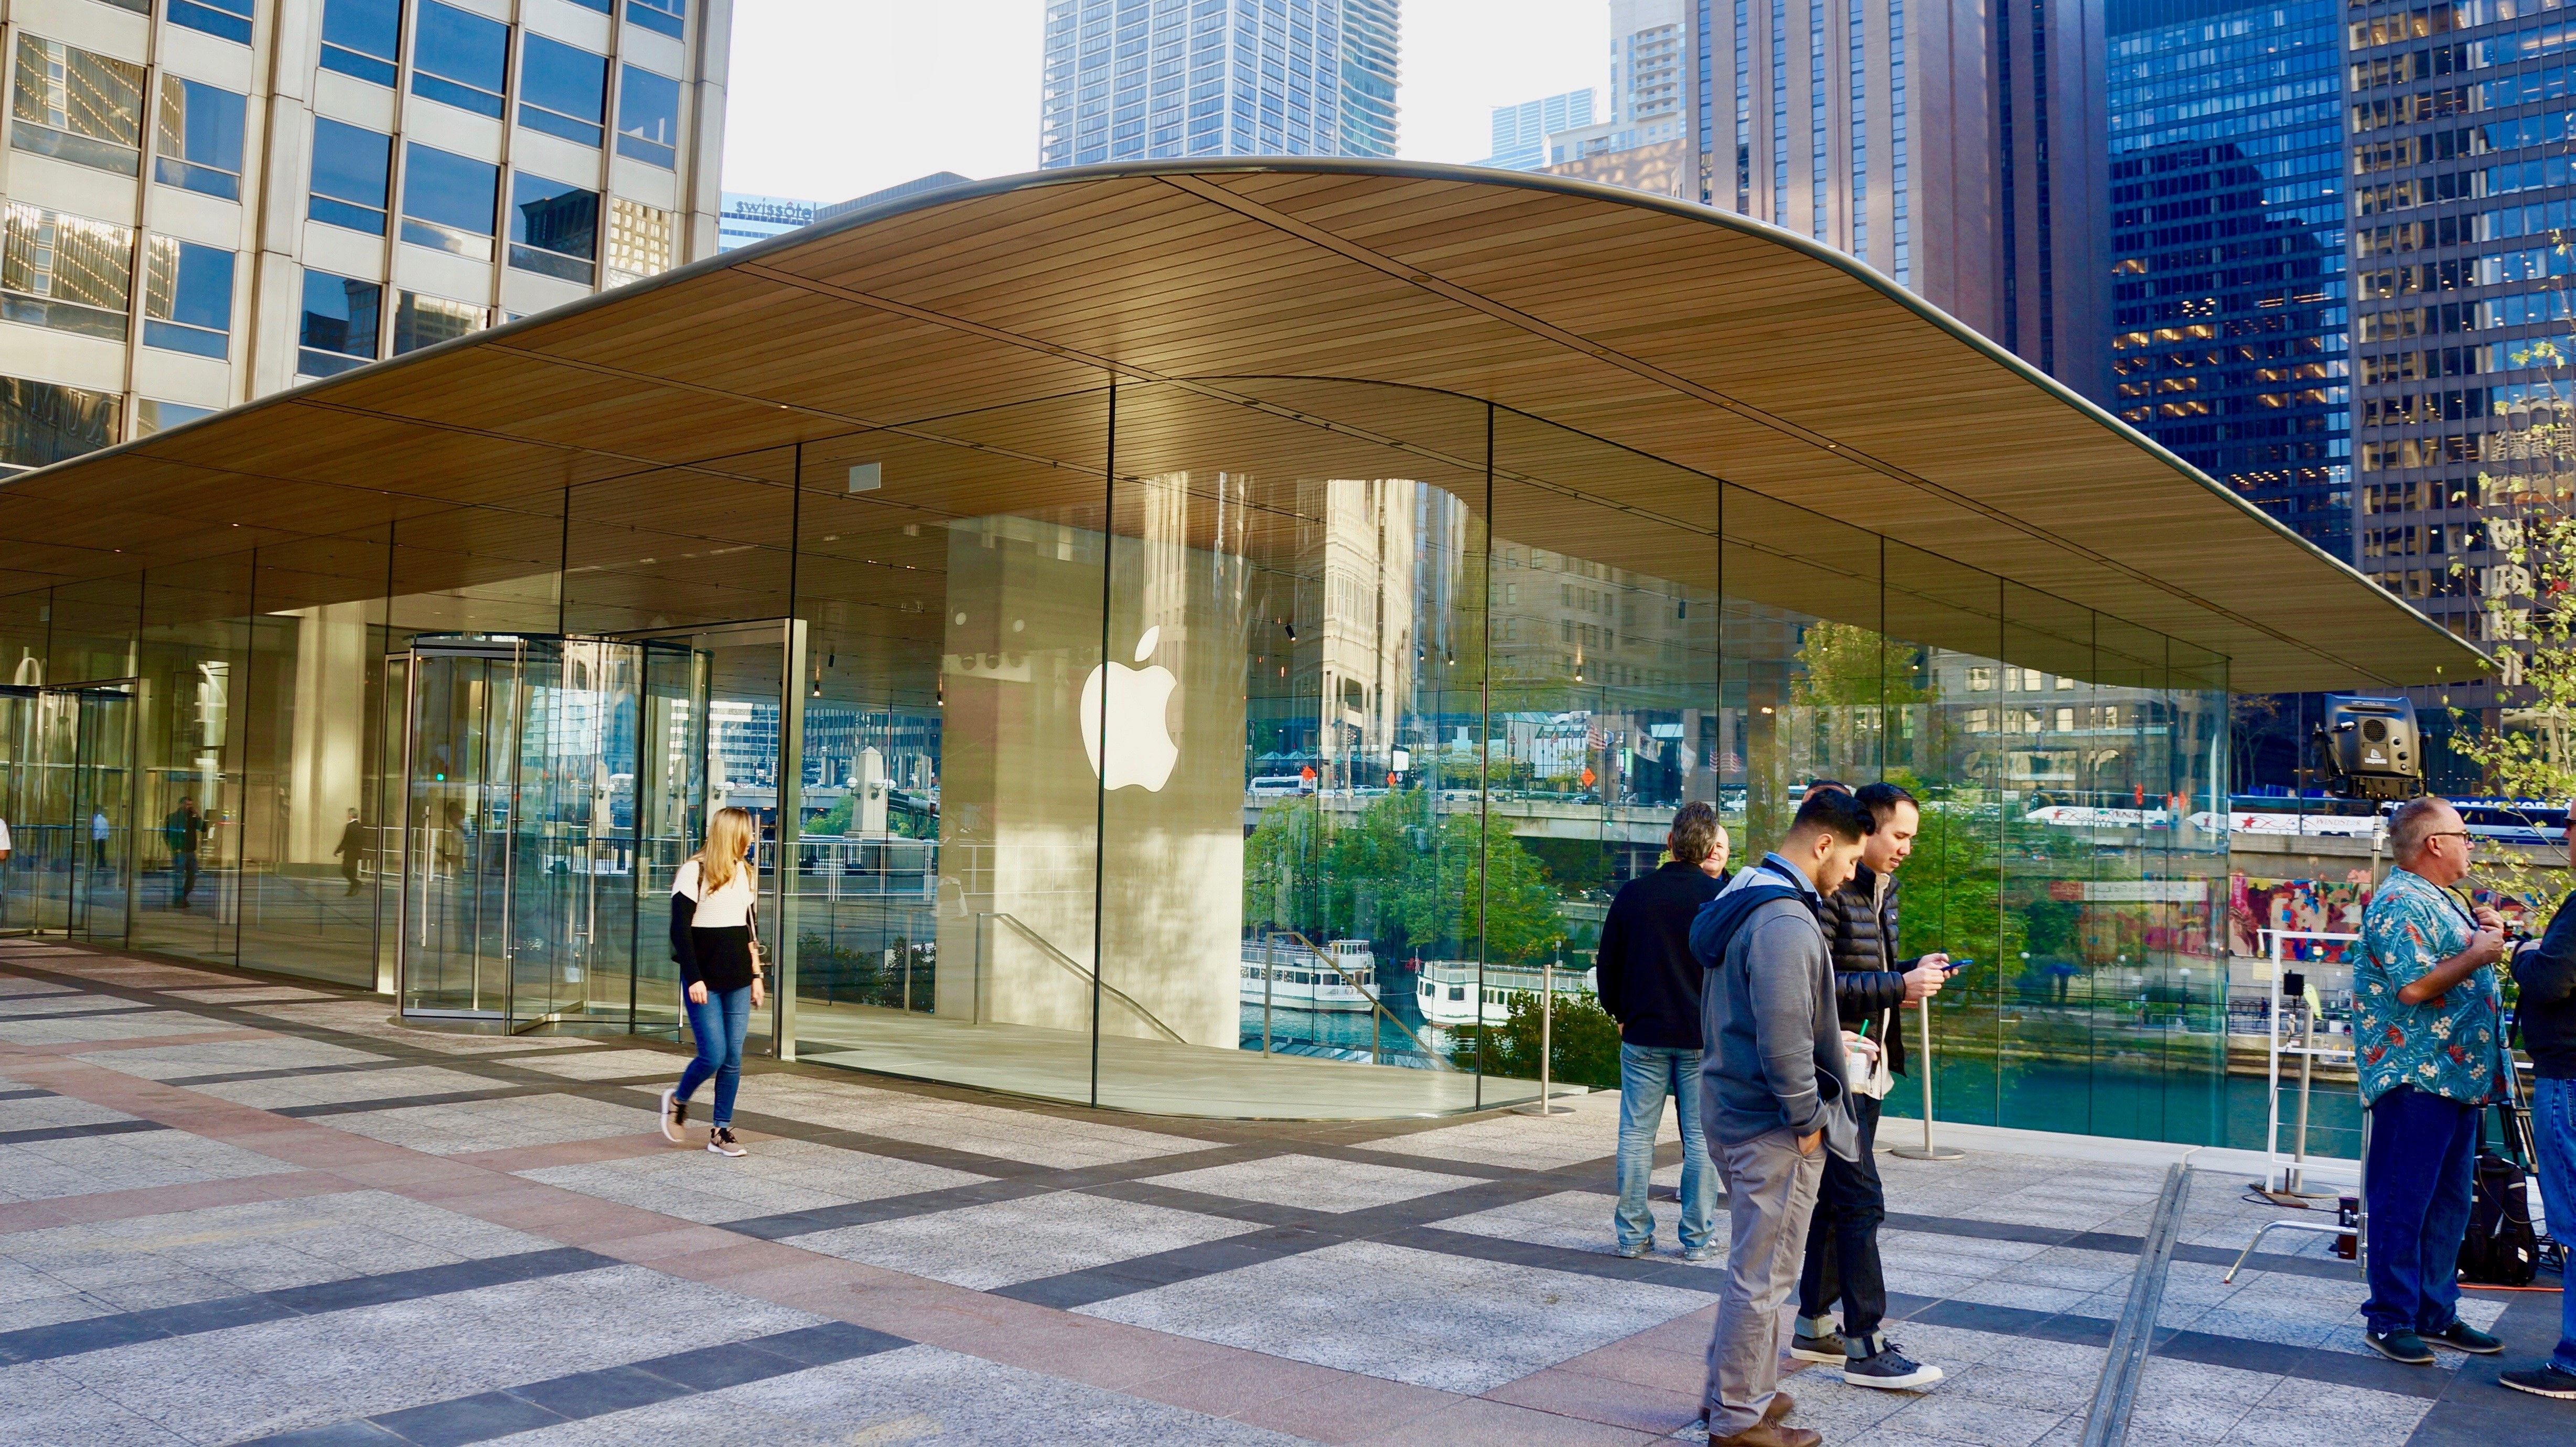 A Photo Tour Of Apples New Flagship Chicago Store MacStories - New apple store in chicago will have a giant macbook as its roof